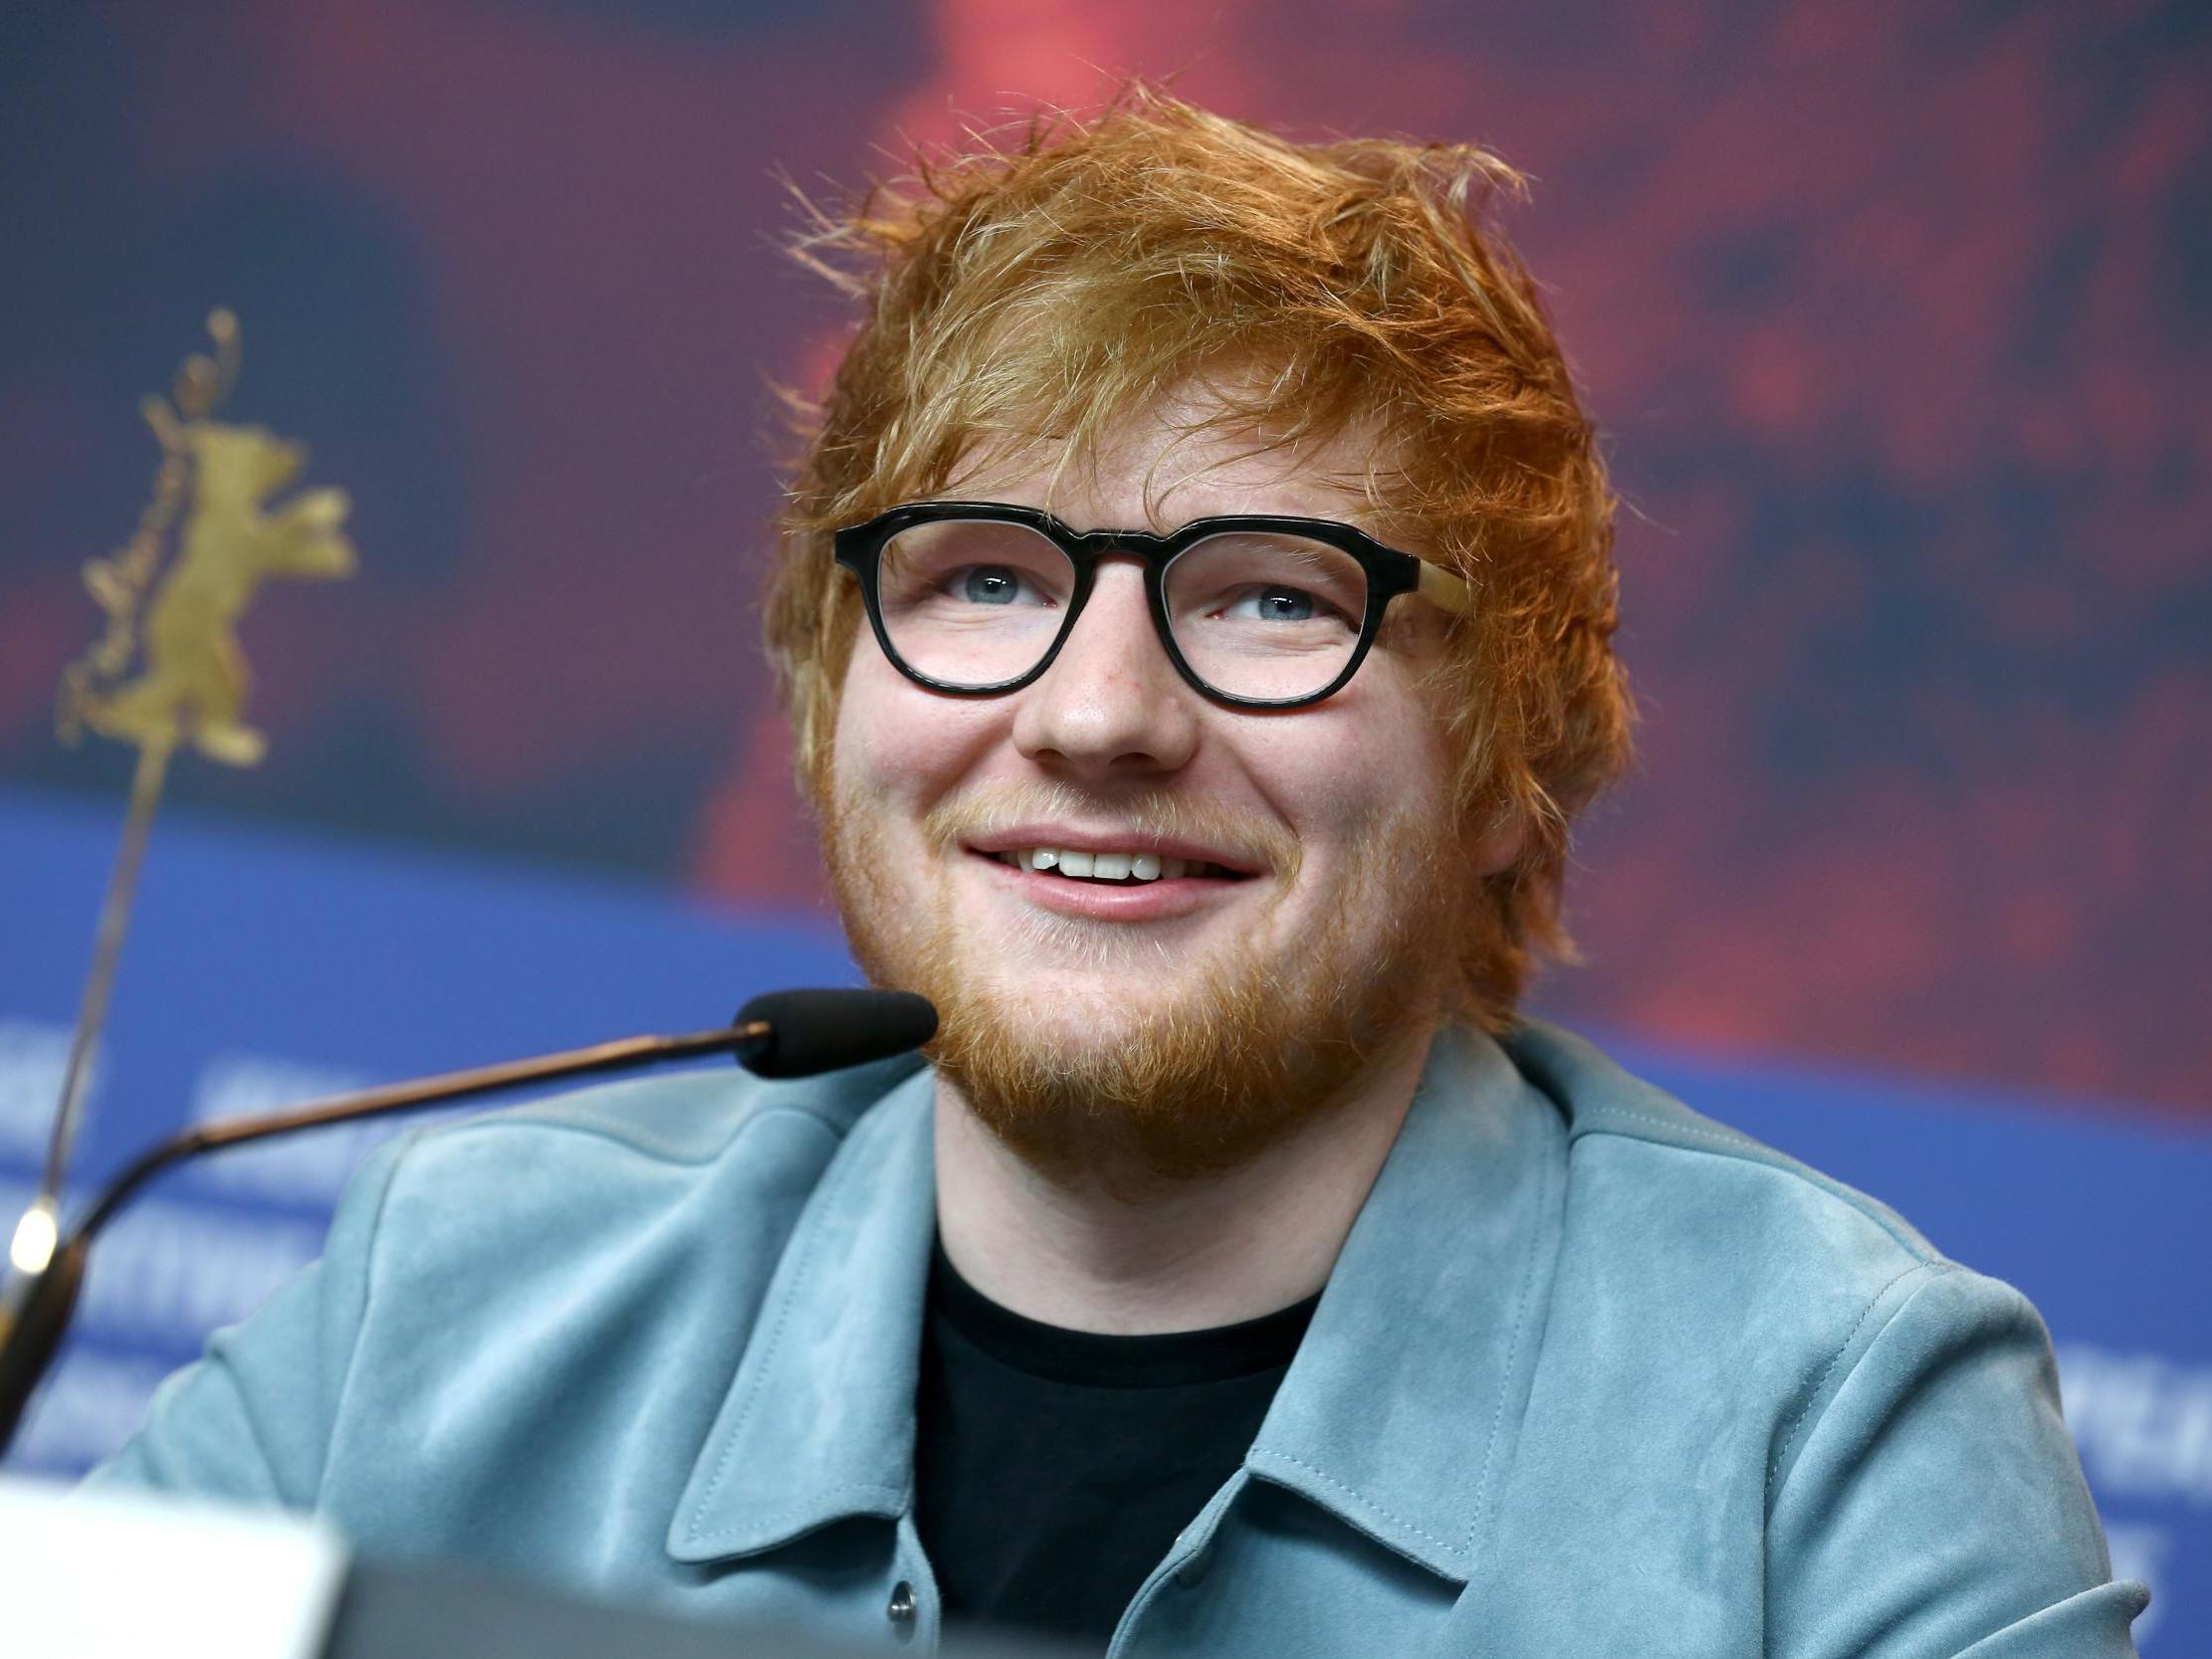 Ed Sheeran's manager made £30m last year and almost matched singer's earnings